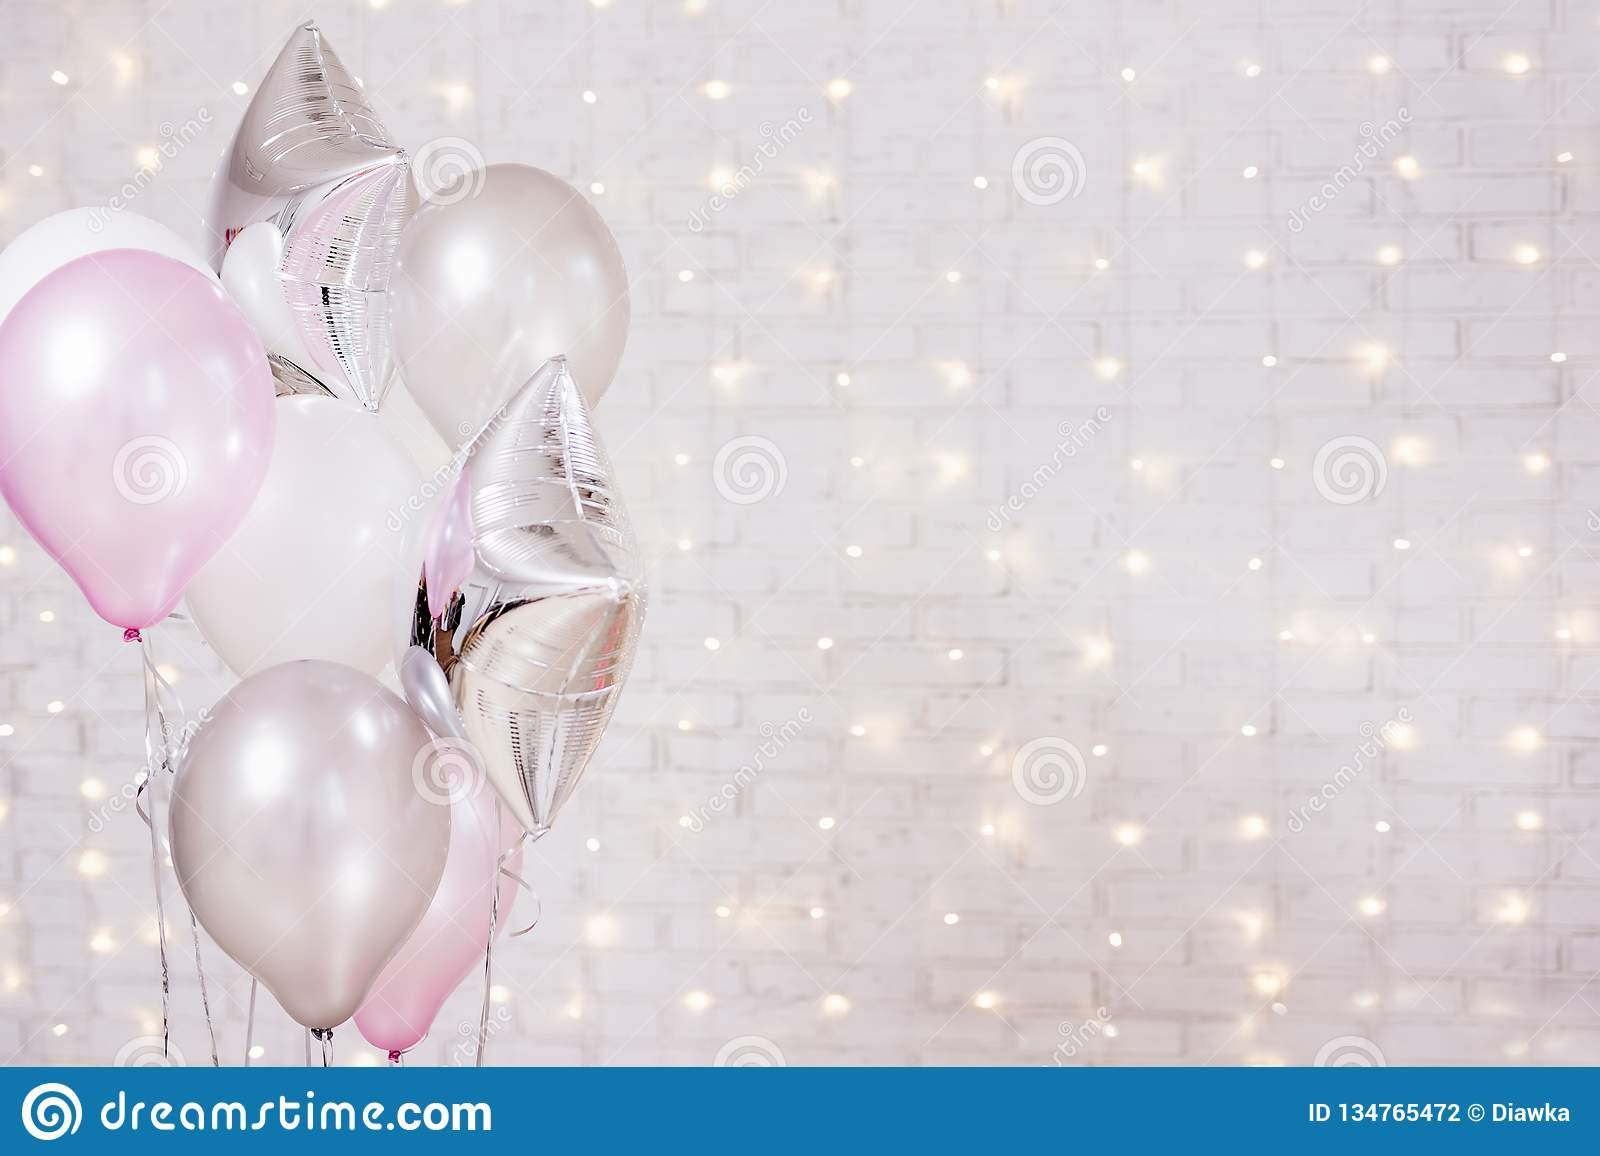 Birthday and christmas concept - close up of air balloons over brick wall background with lights